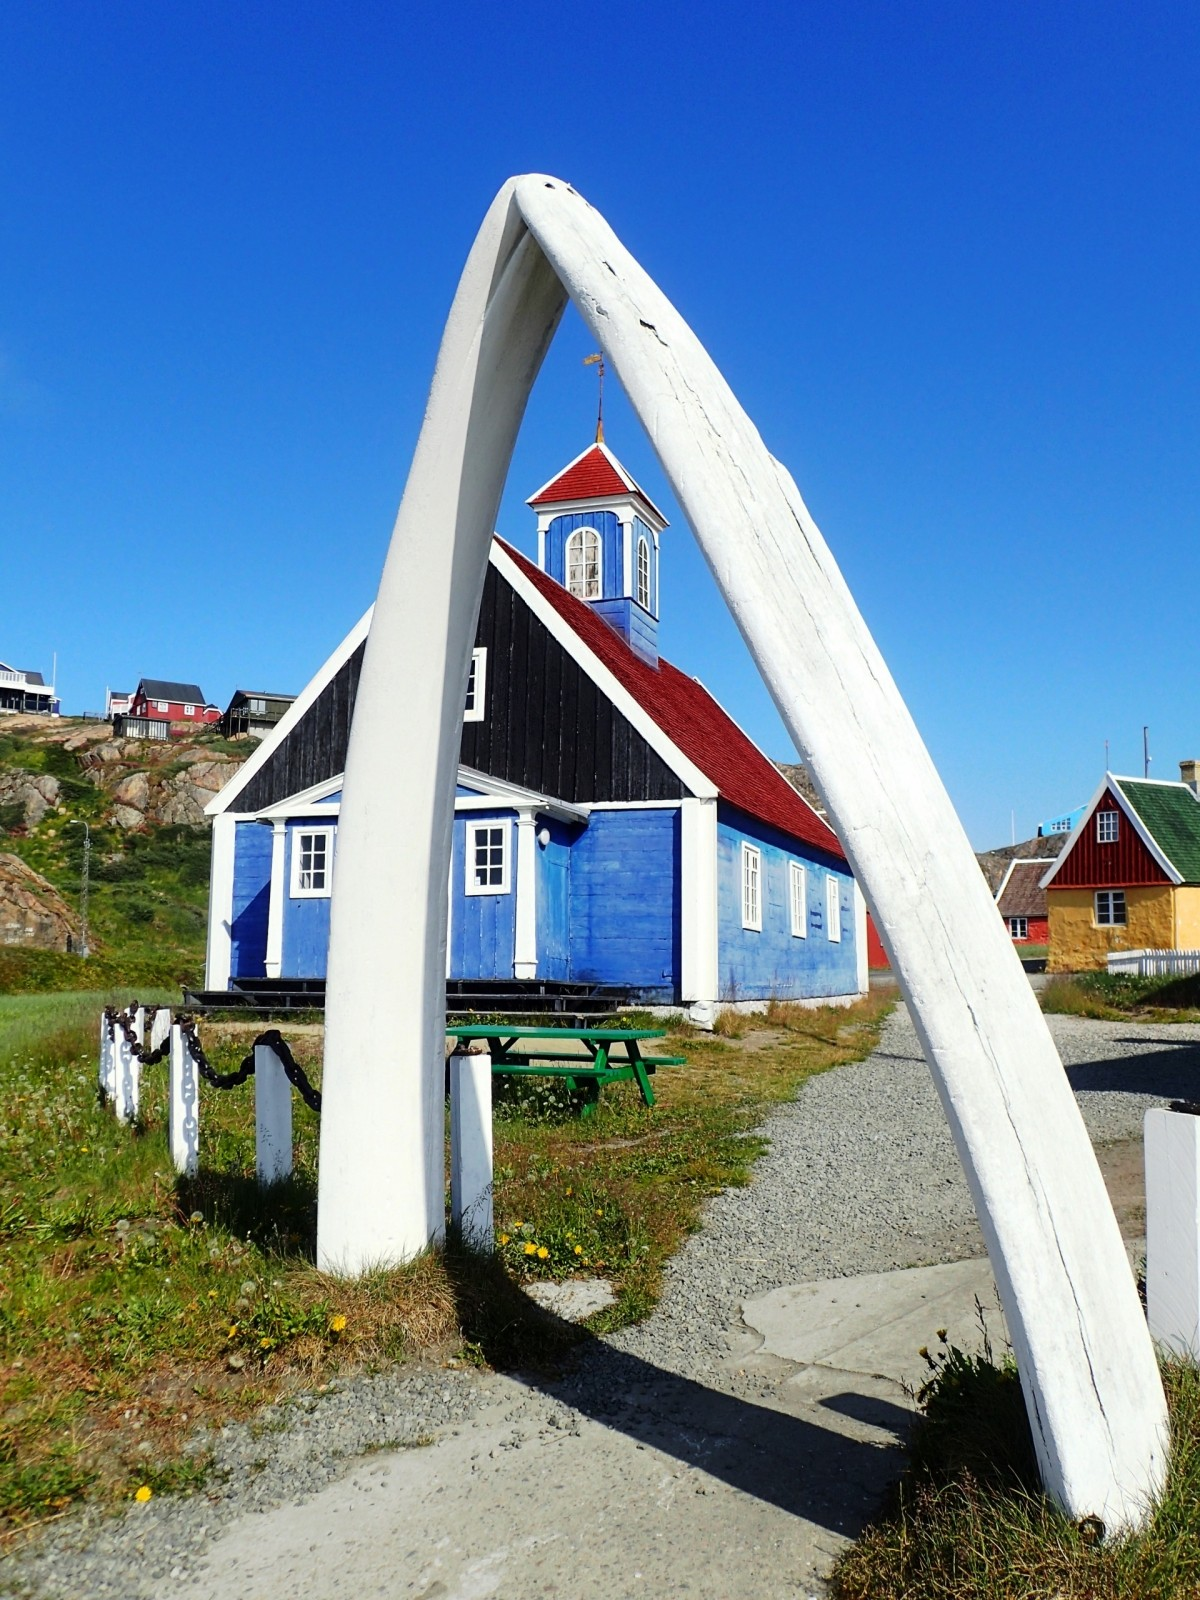 Old Church and Whale Jaw Bones. Photo by Allan Liddle